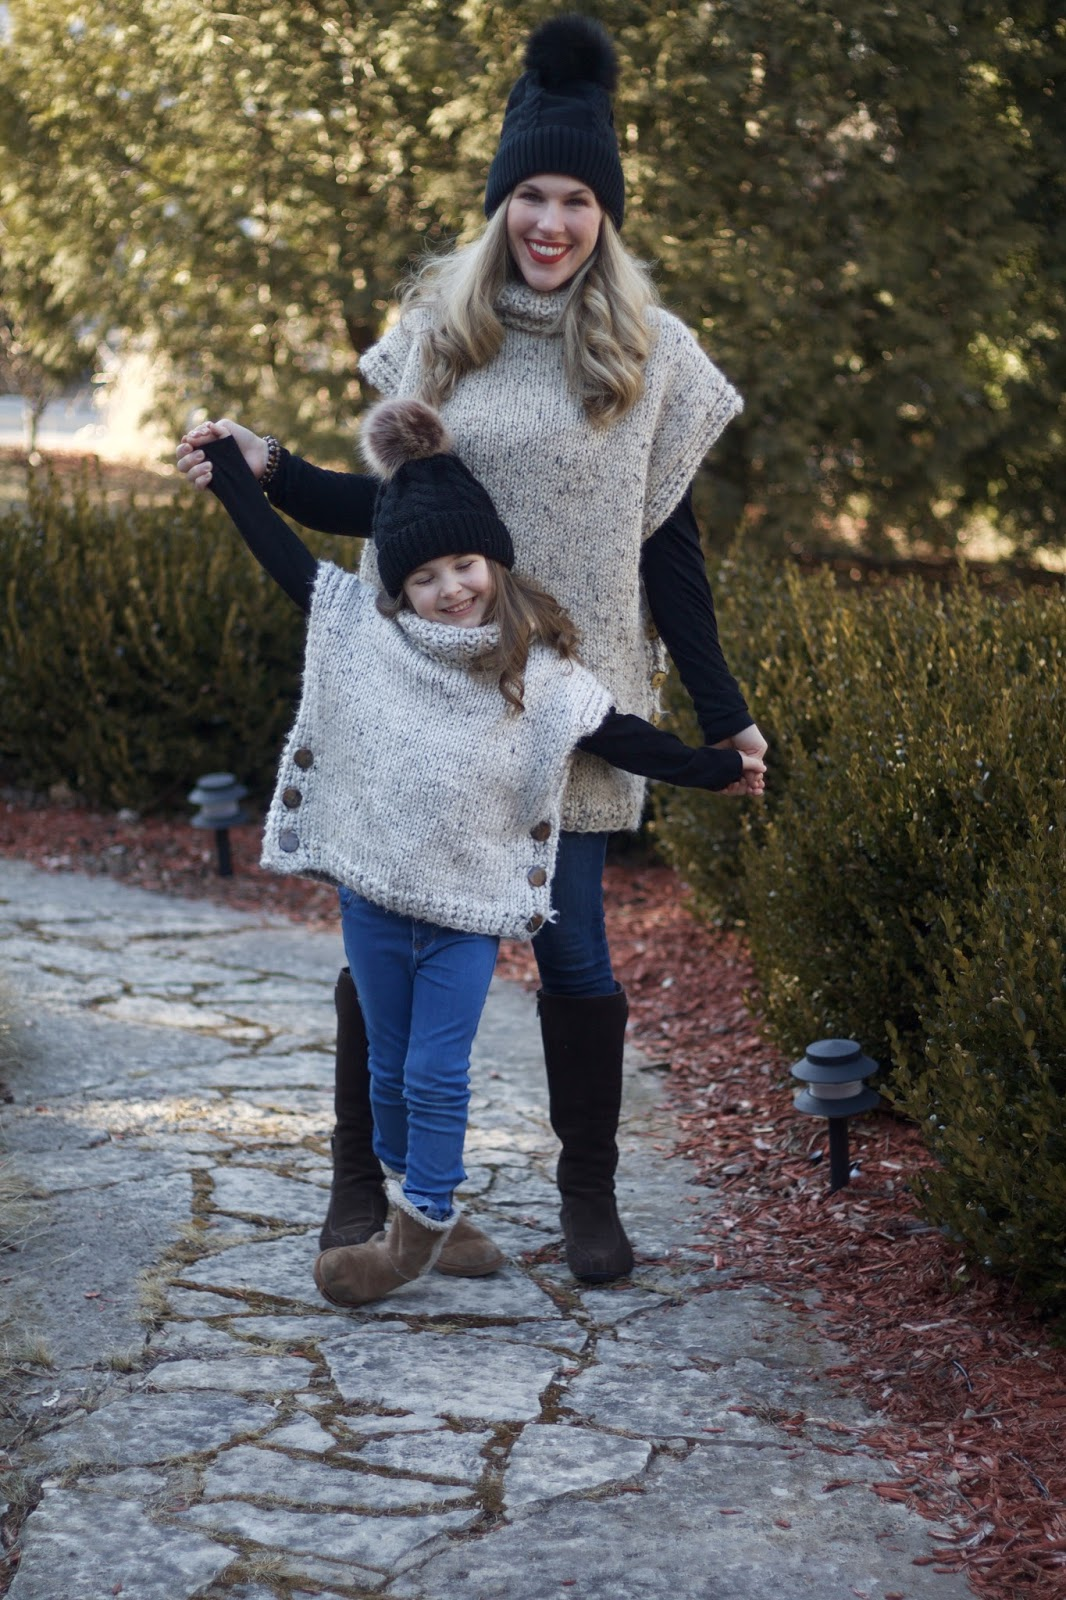 handmade poncho, Rockstar jeans, brown suede riding boots, black fur pom pom hat, mommy & me, mommy & me poncho